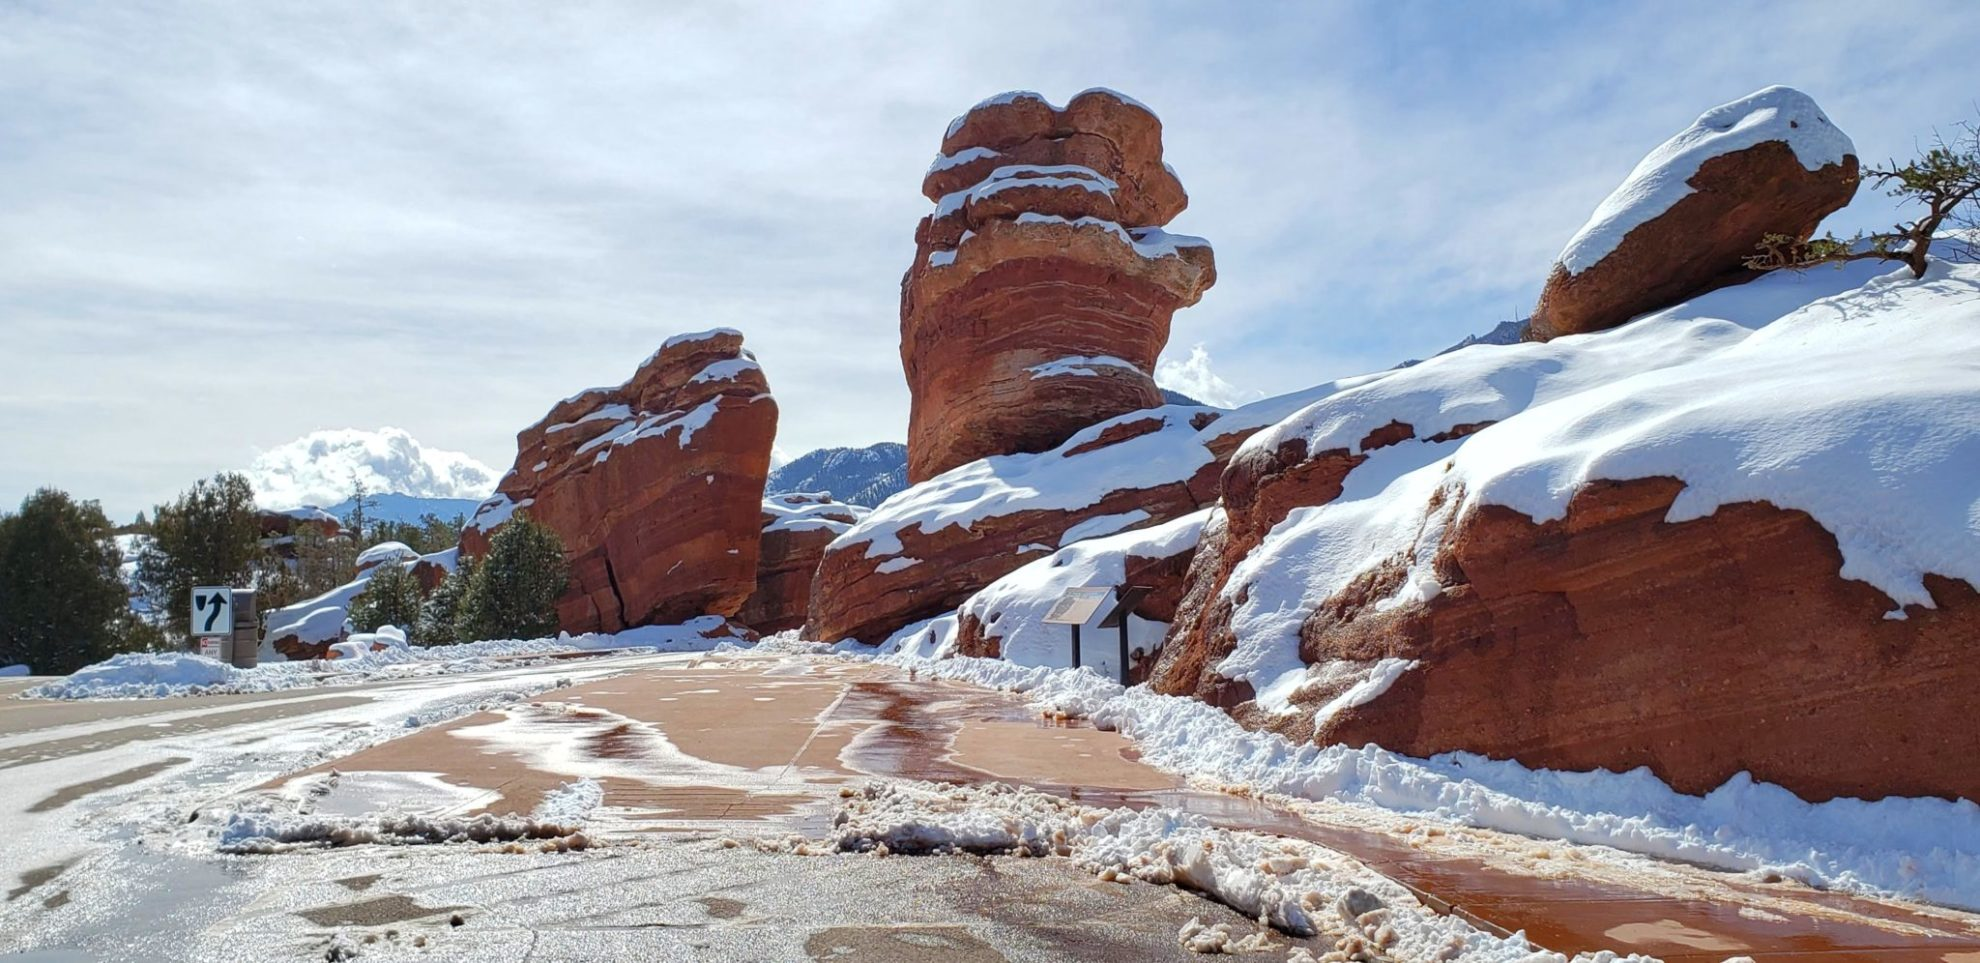 Steamboat Rock on left and Balanced Rock in the middle